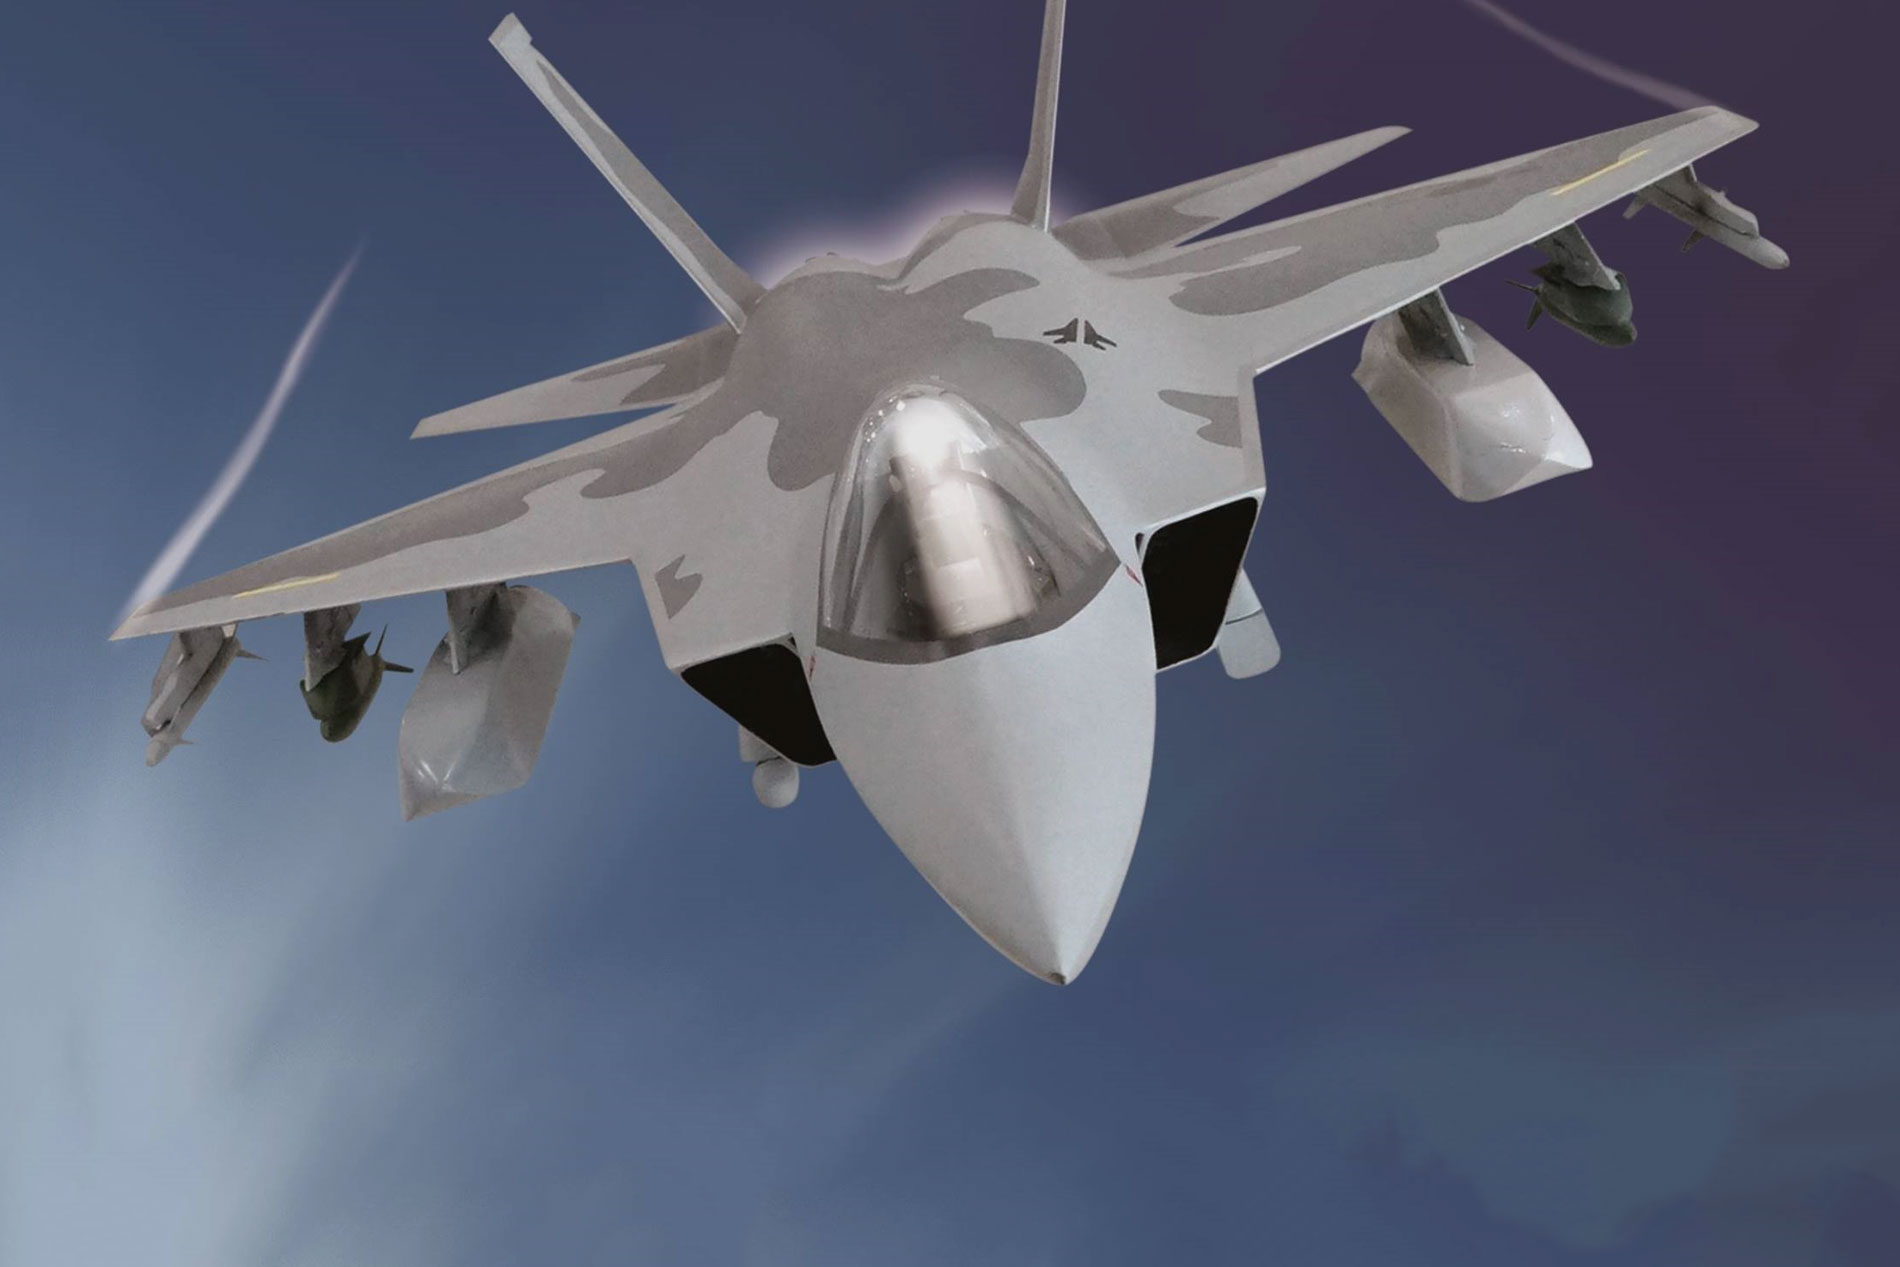 Cobham Wins KF-X Weapons Carriage & Release Award from KAI